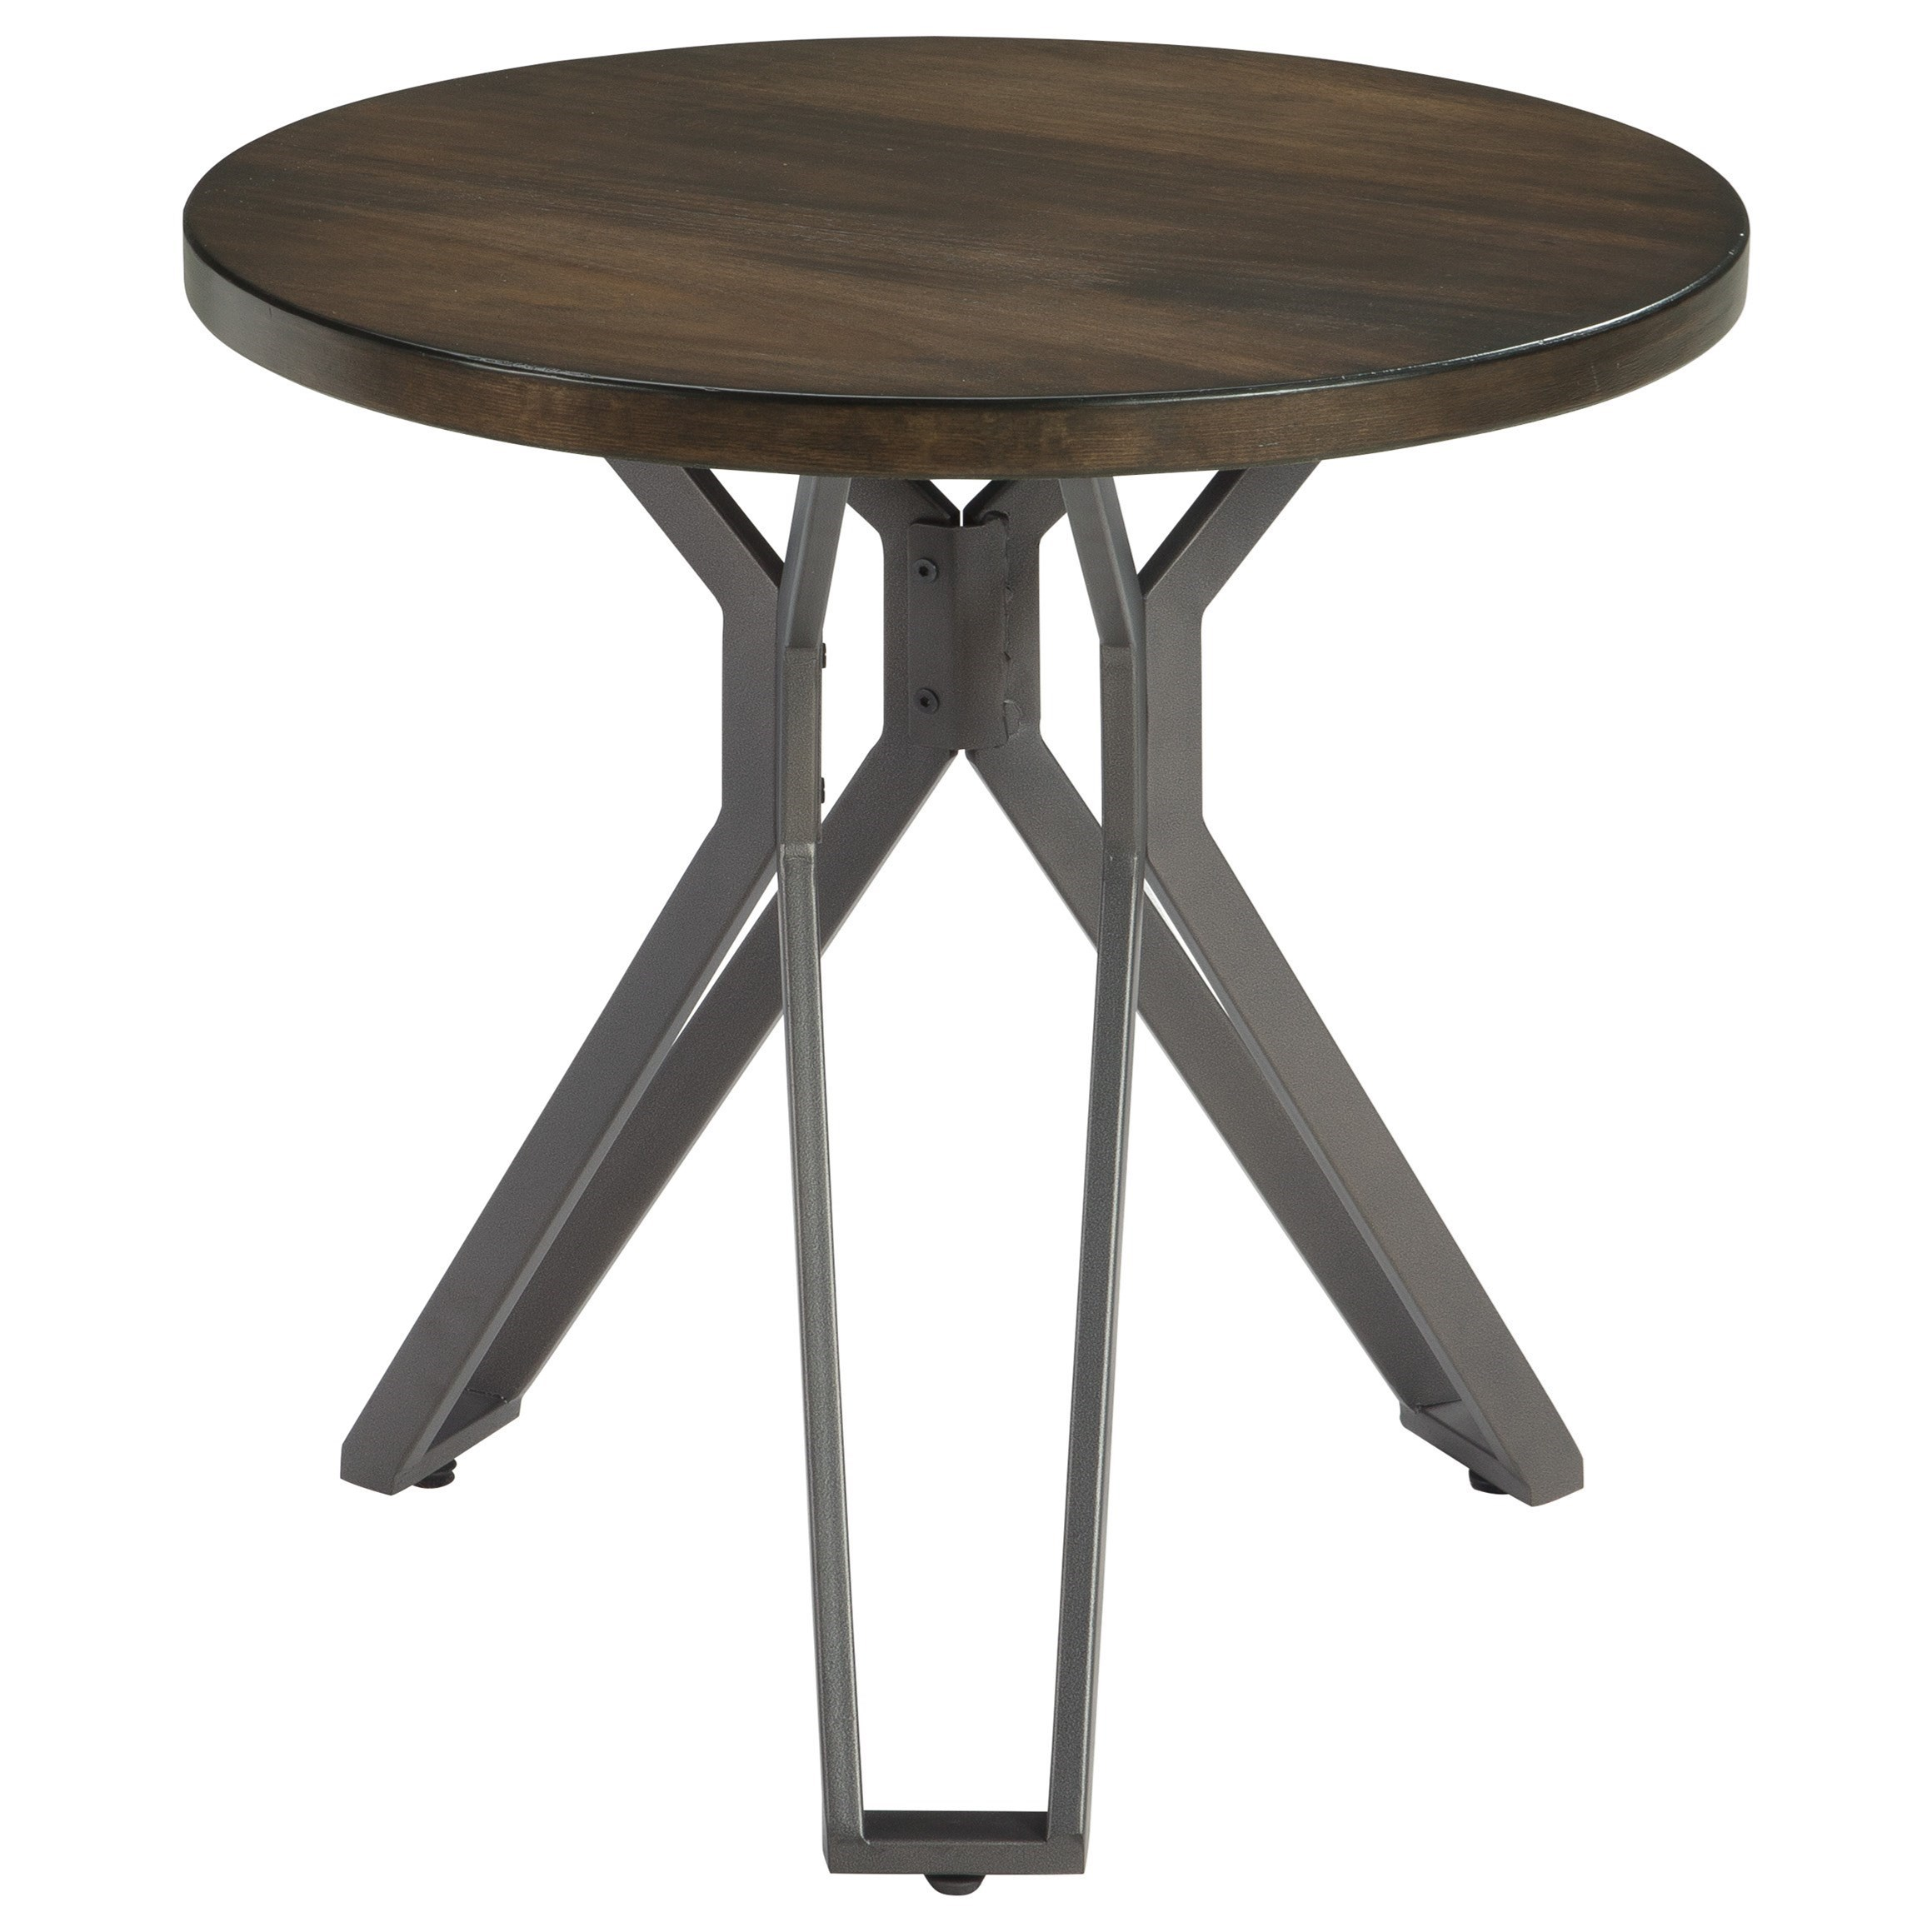 Signature Design by Ashley Tavonni Round End Table - Item Number: T476-6